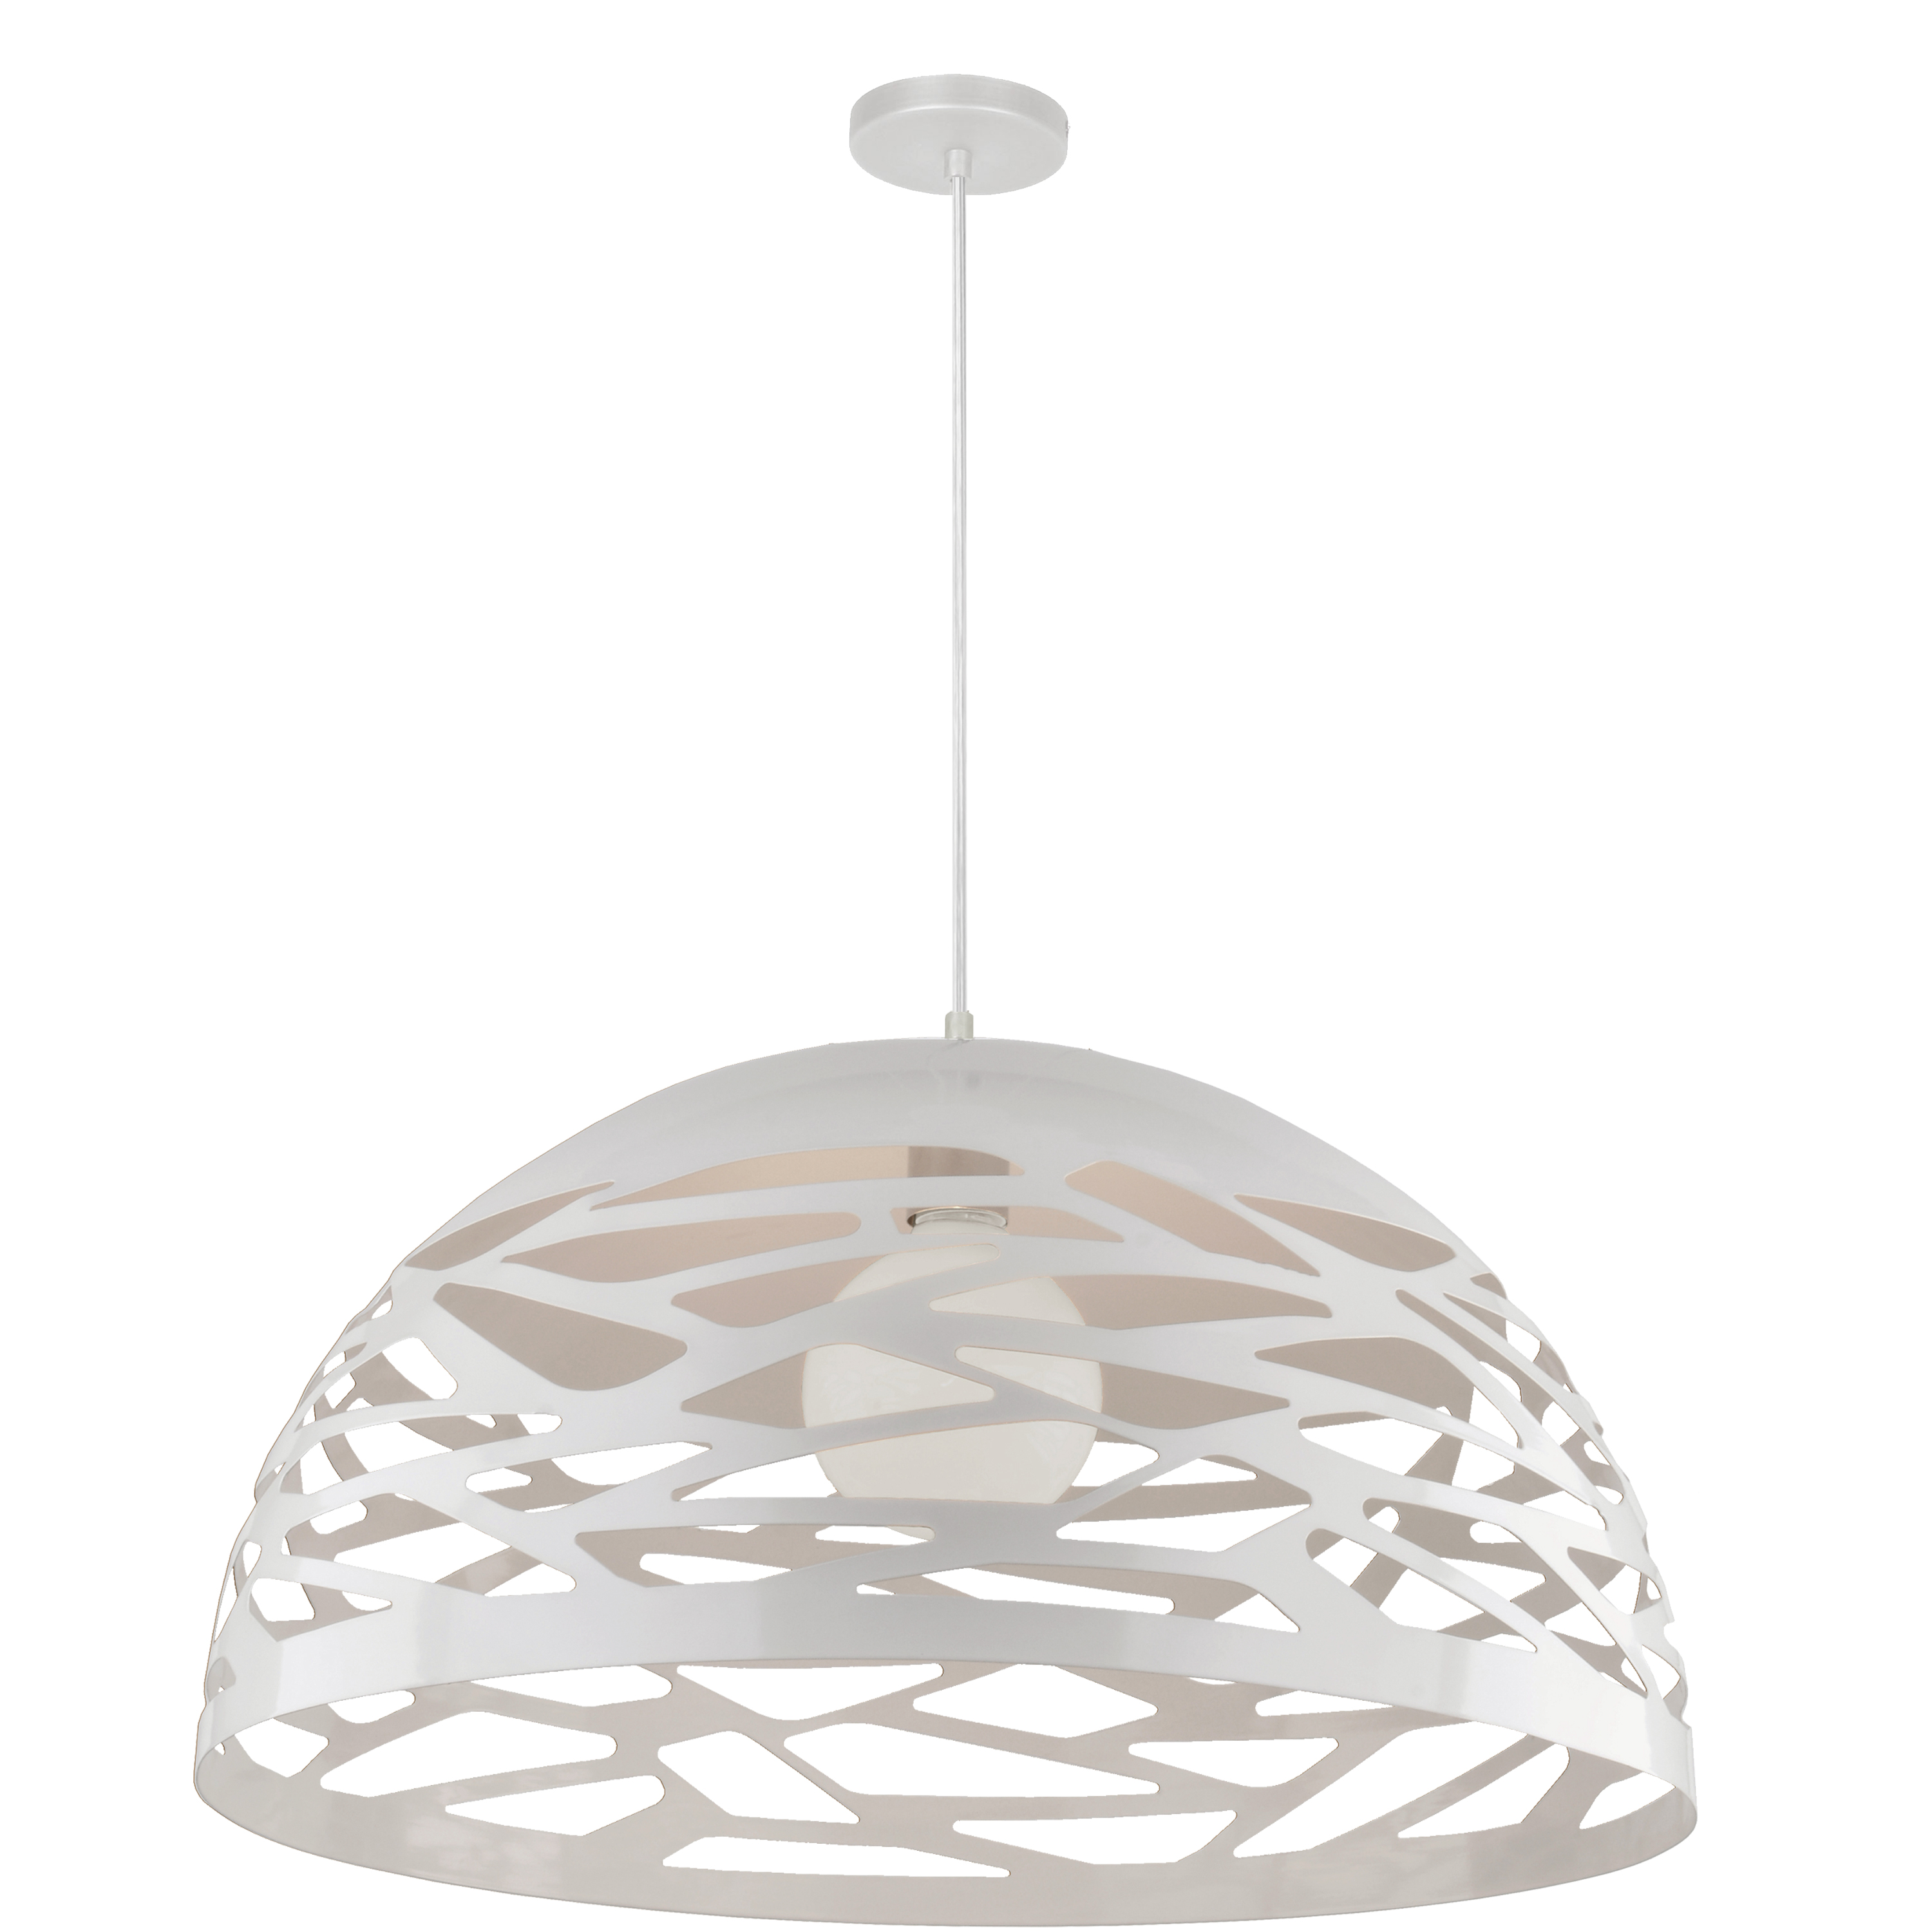 1 Light Pendant, Matte White Finish